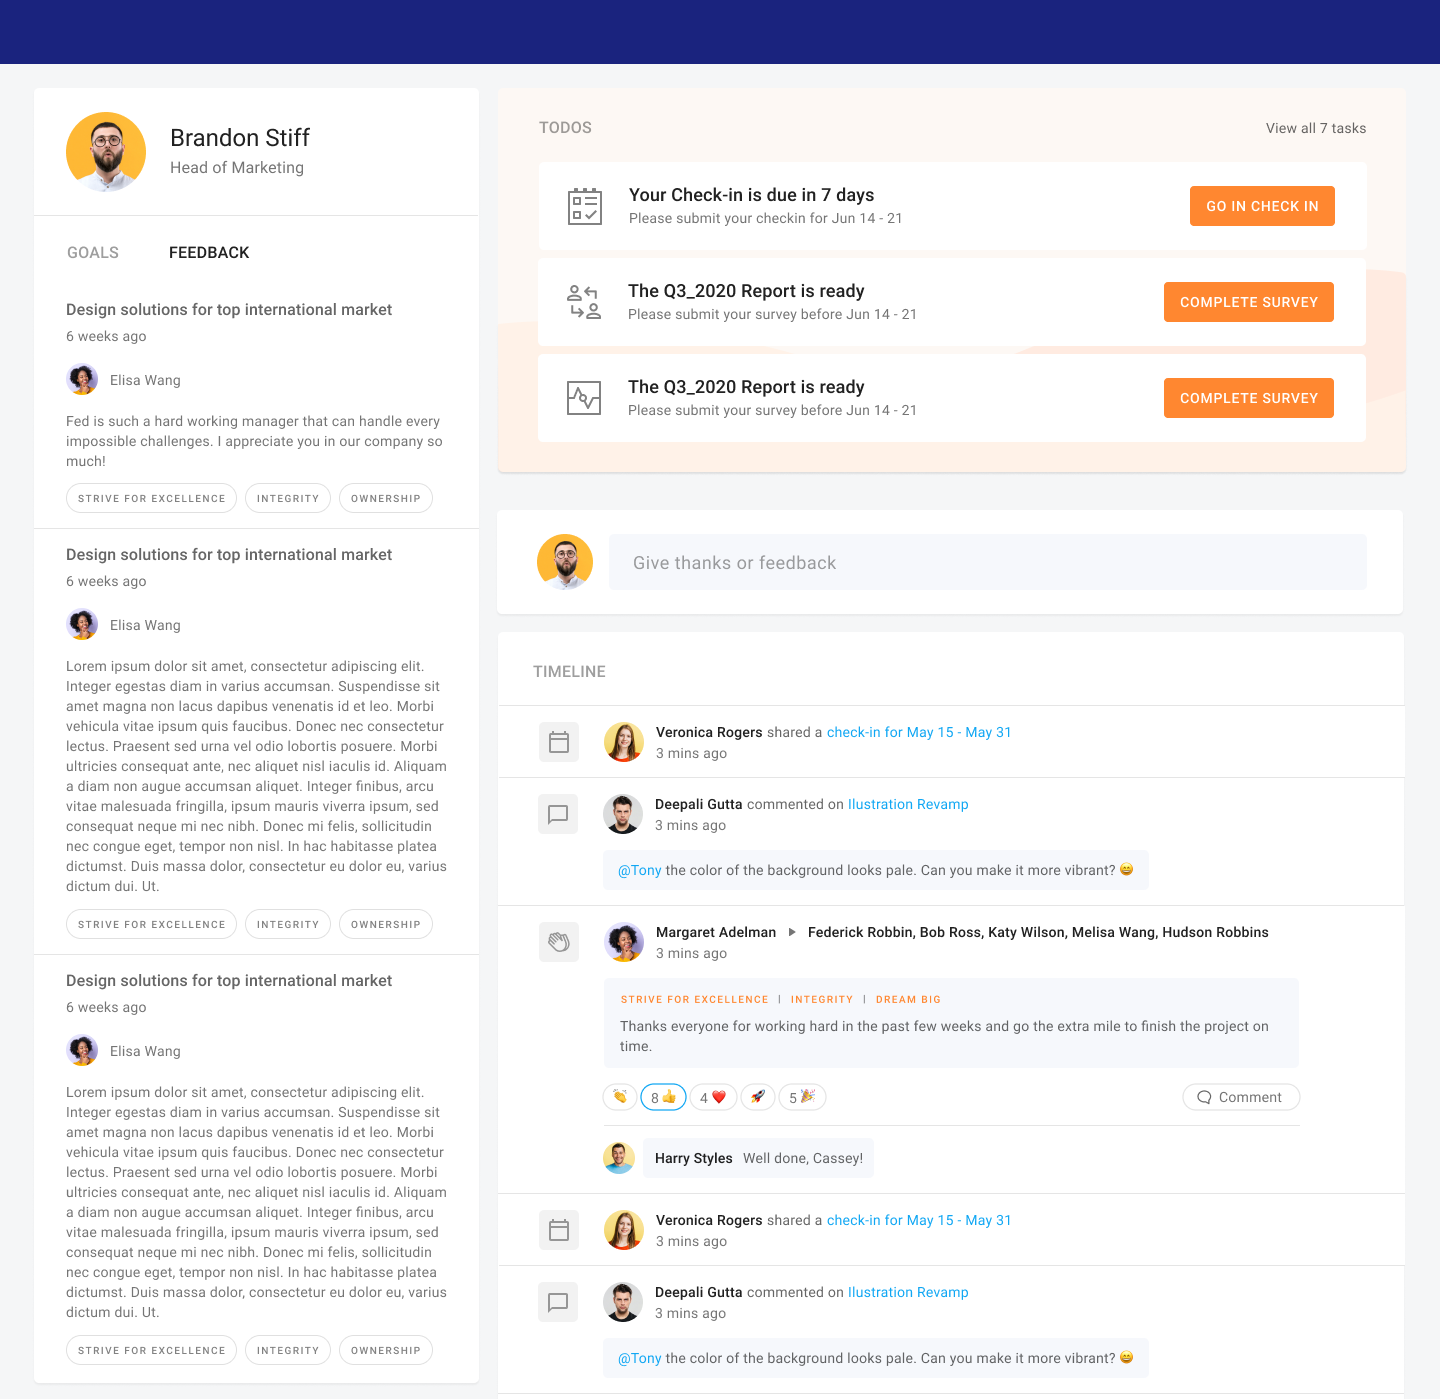 Anama screenshot: Manage everything in one app landing page